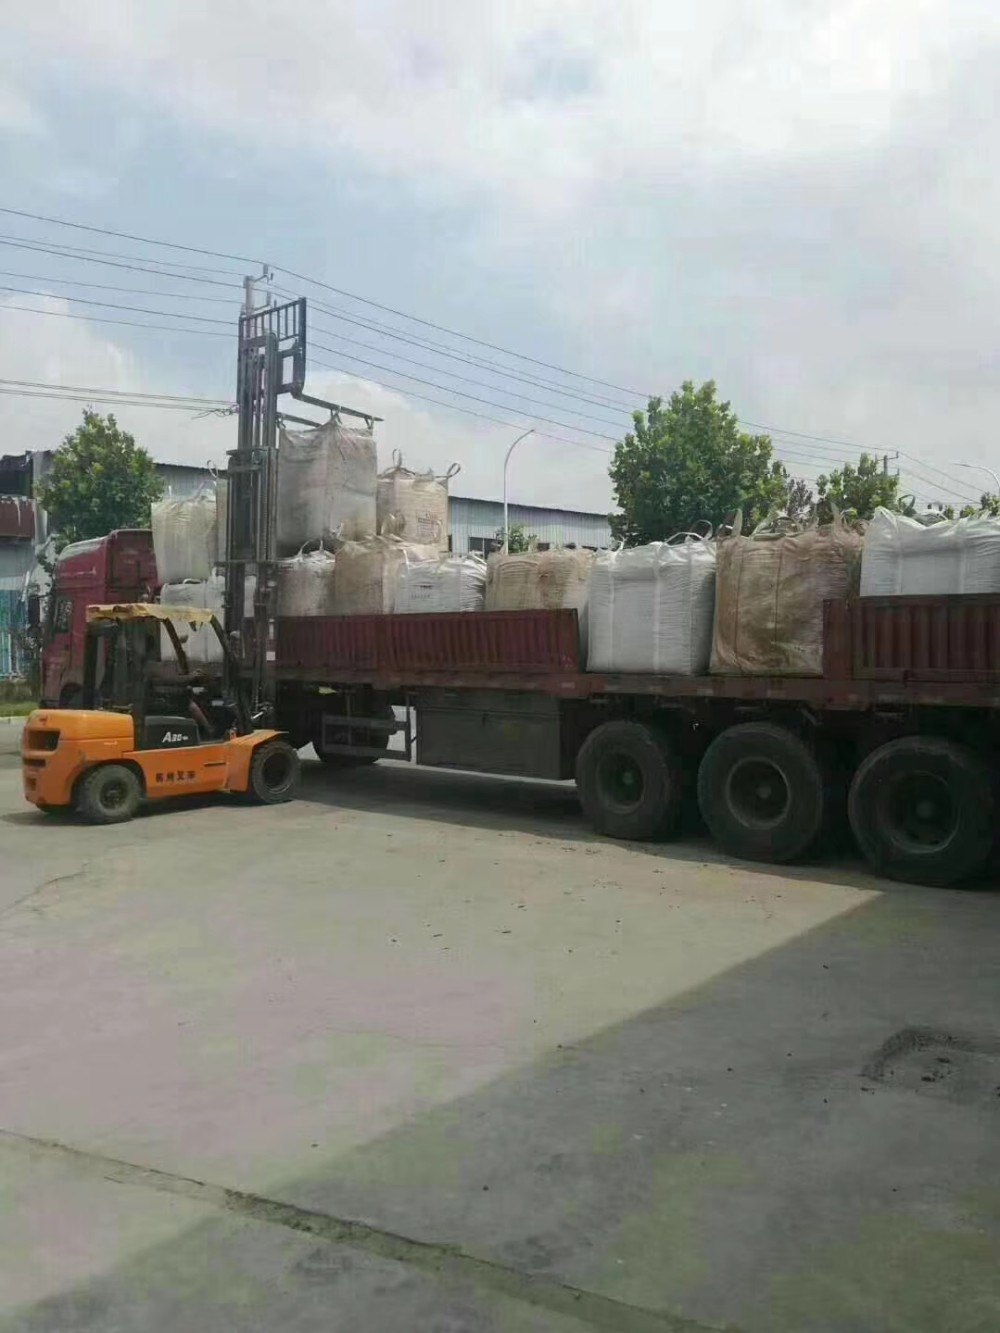 High Quality Wood Pellets Lithuania For Sale - Buy Wood ...